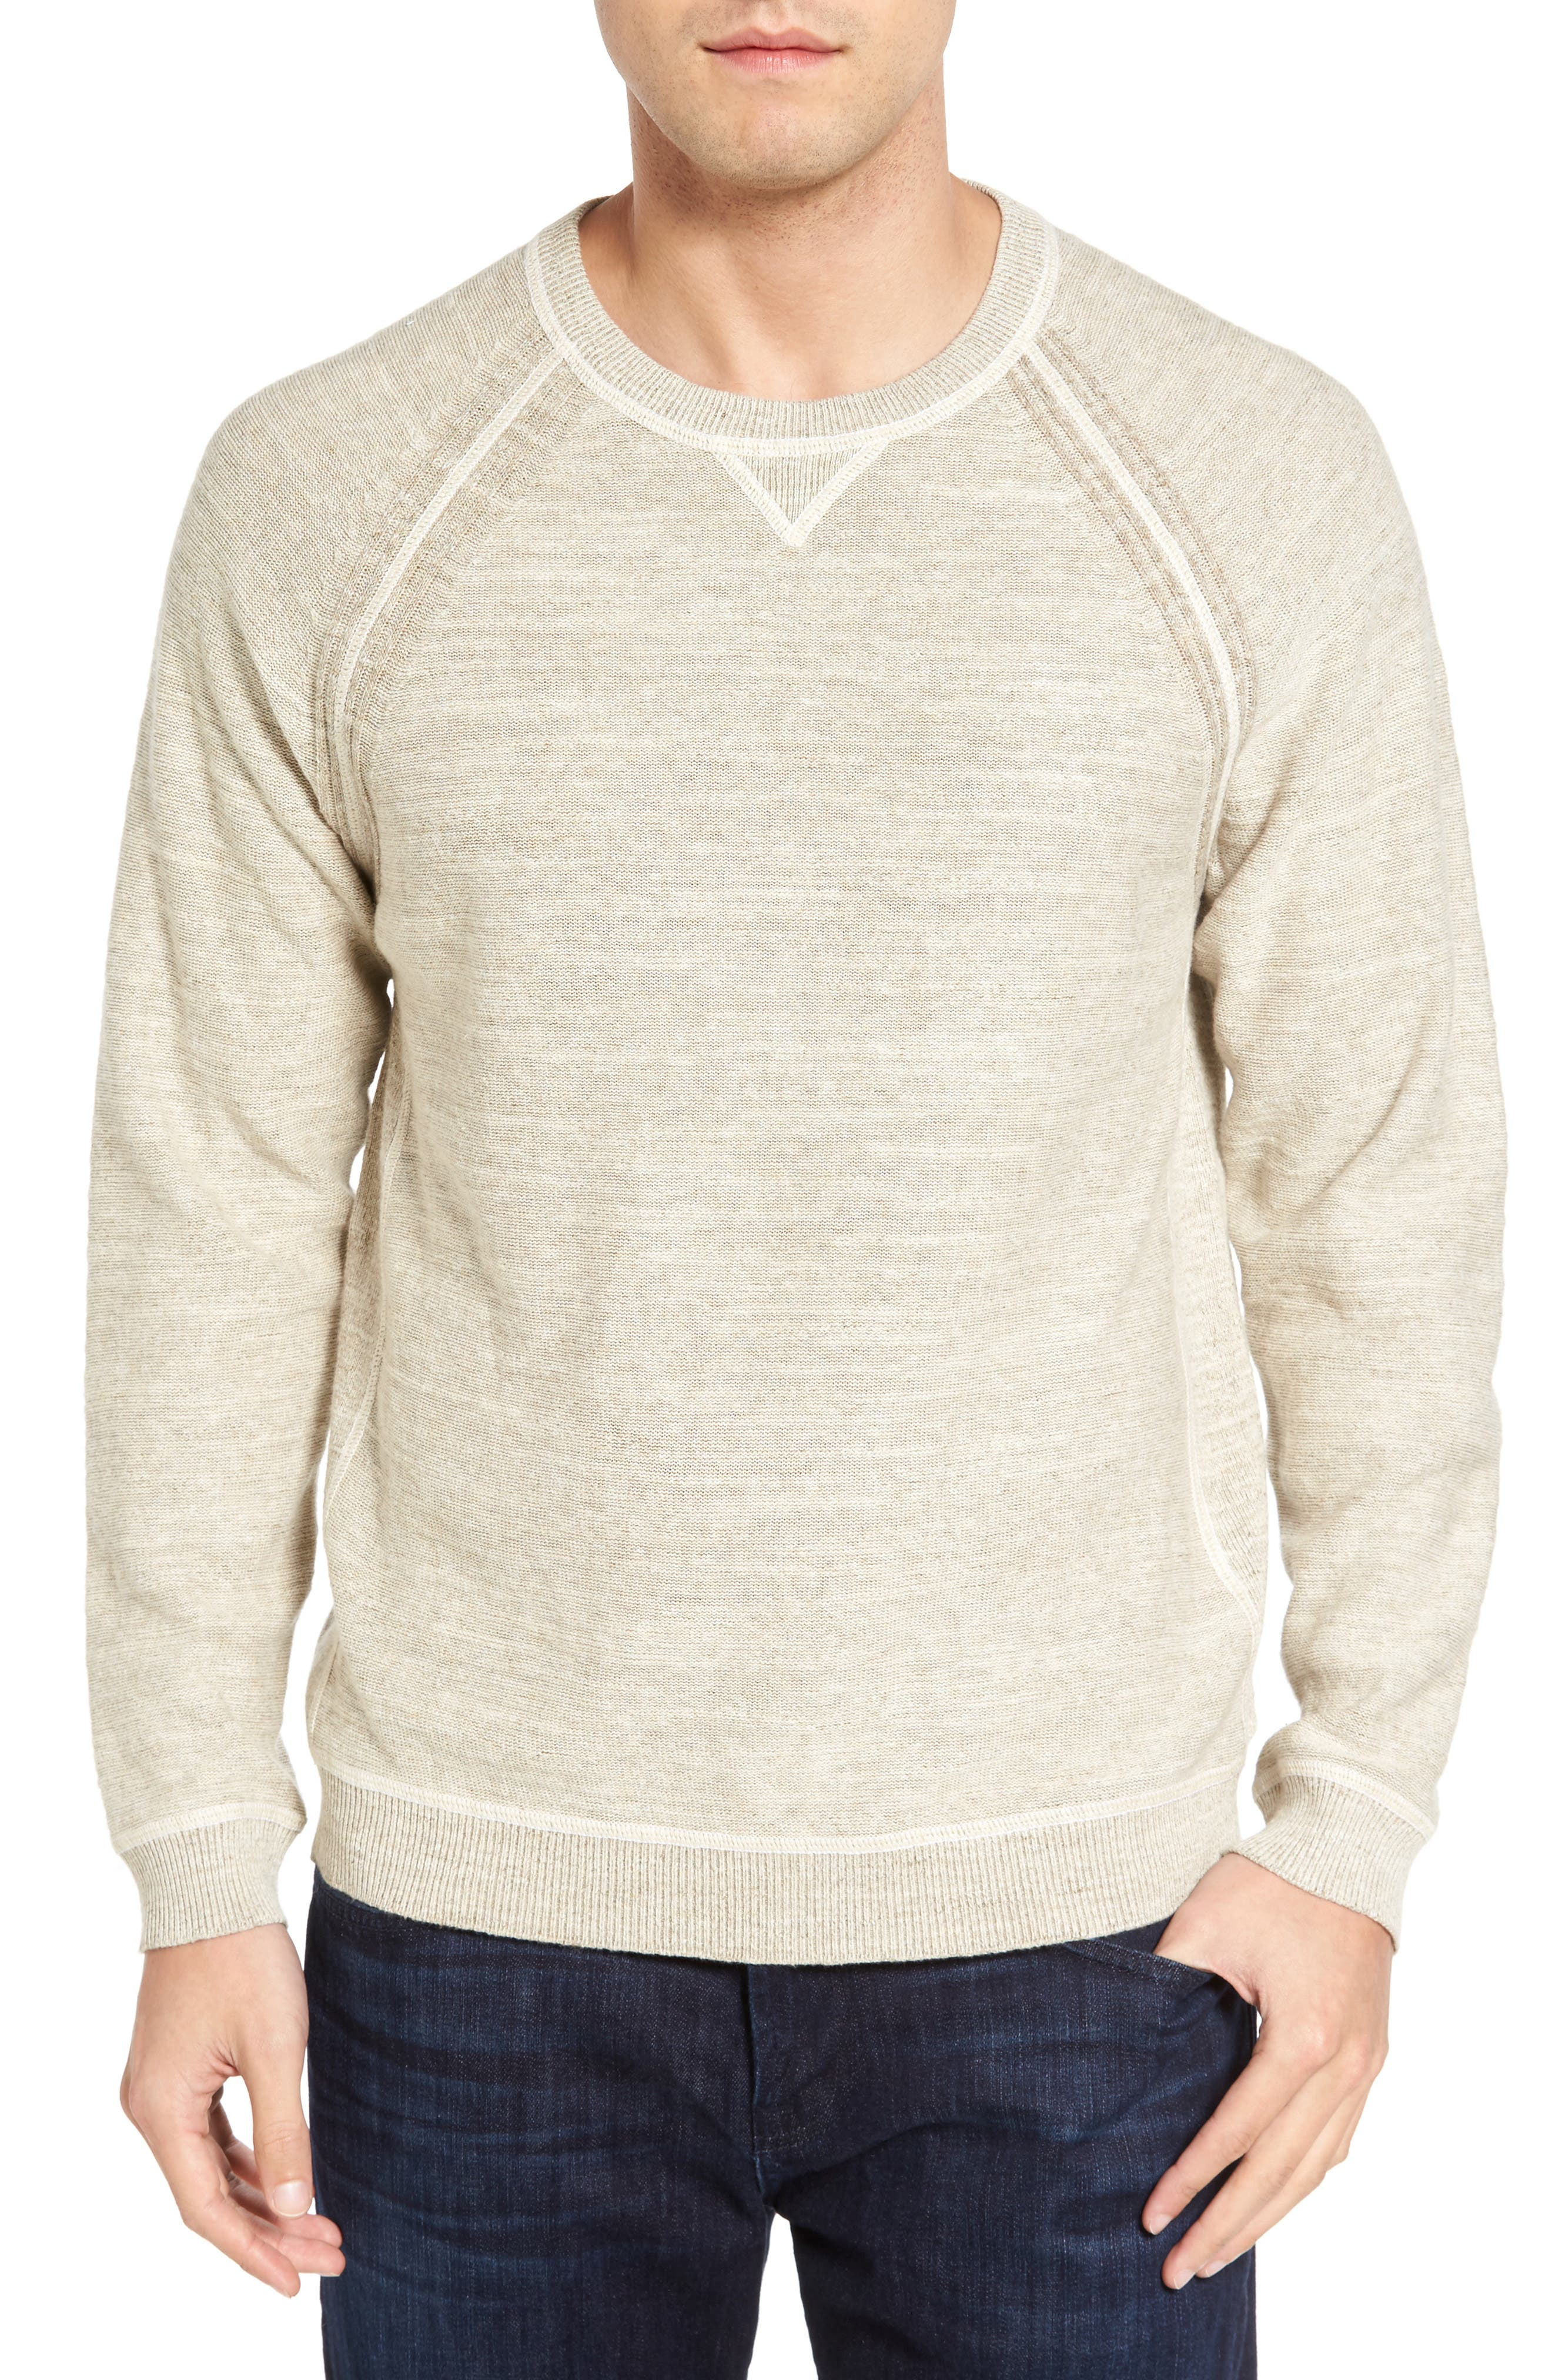 Alternate Image 1 Selected - Tommy Bahama Sandy Bay Reversible Crewneck Sweater